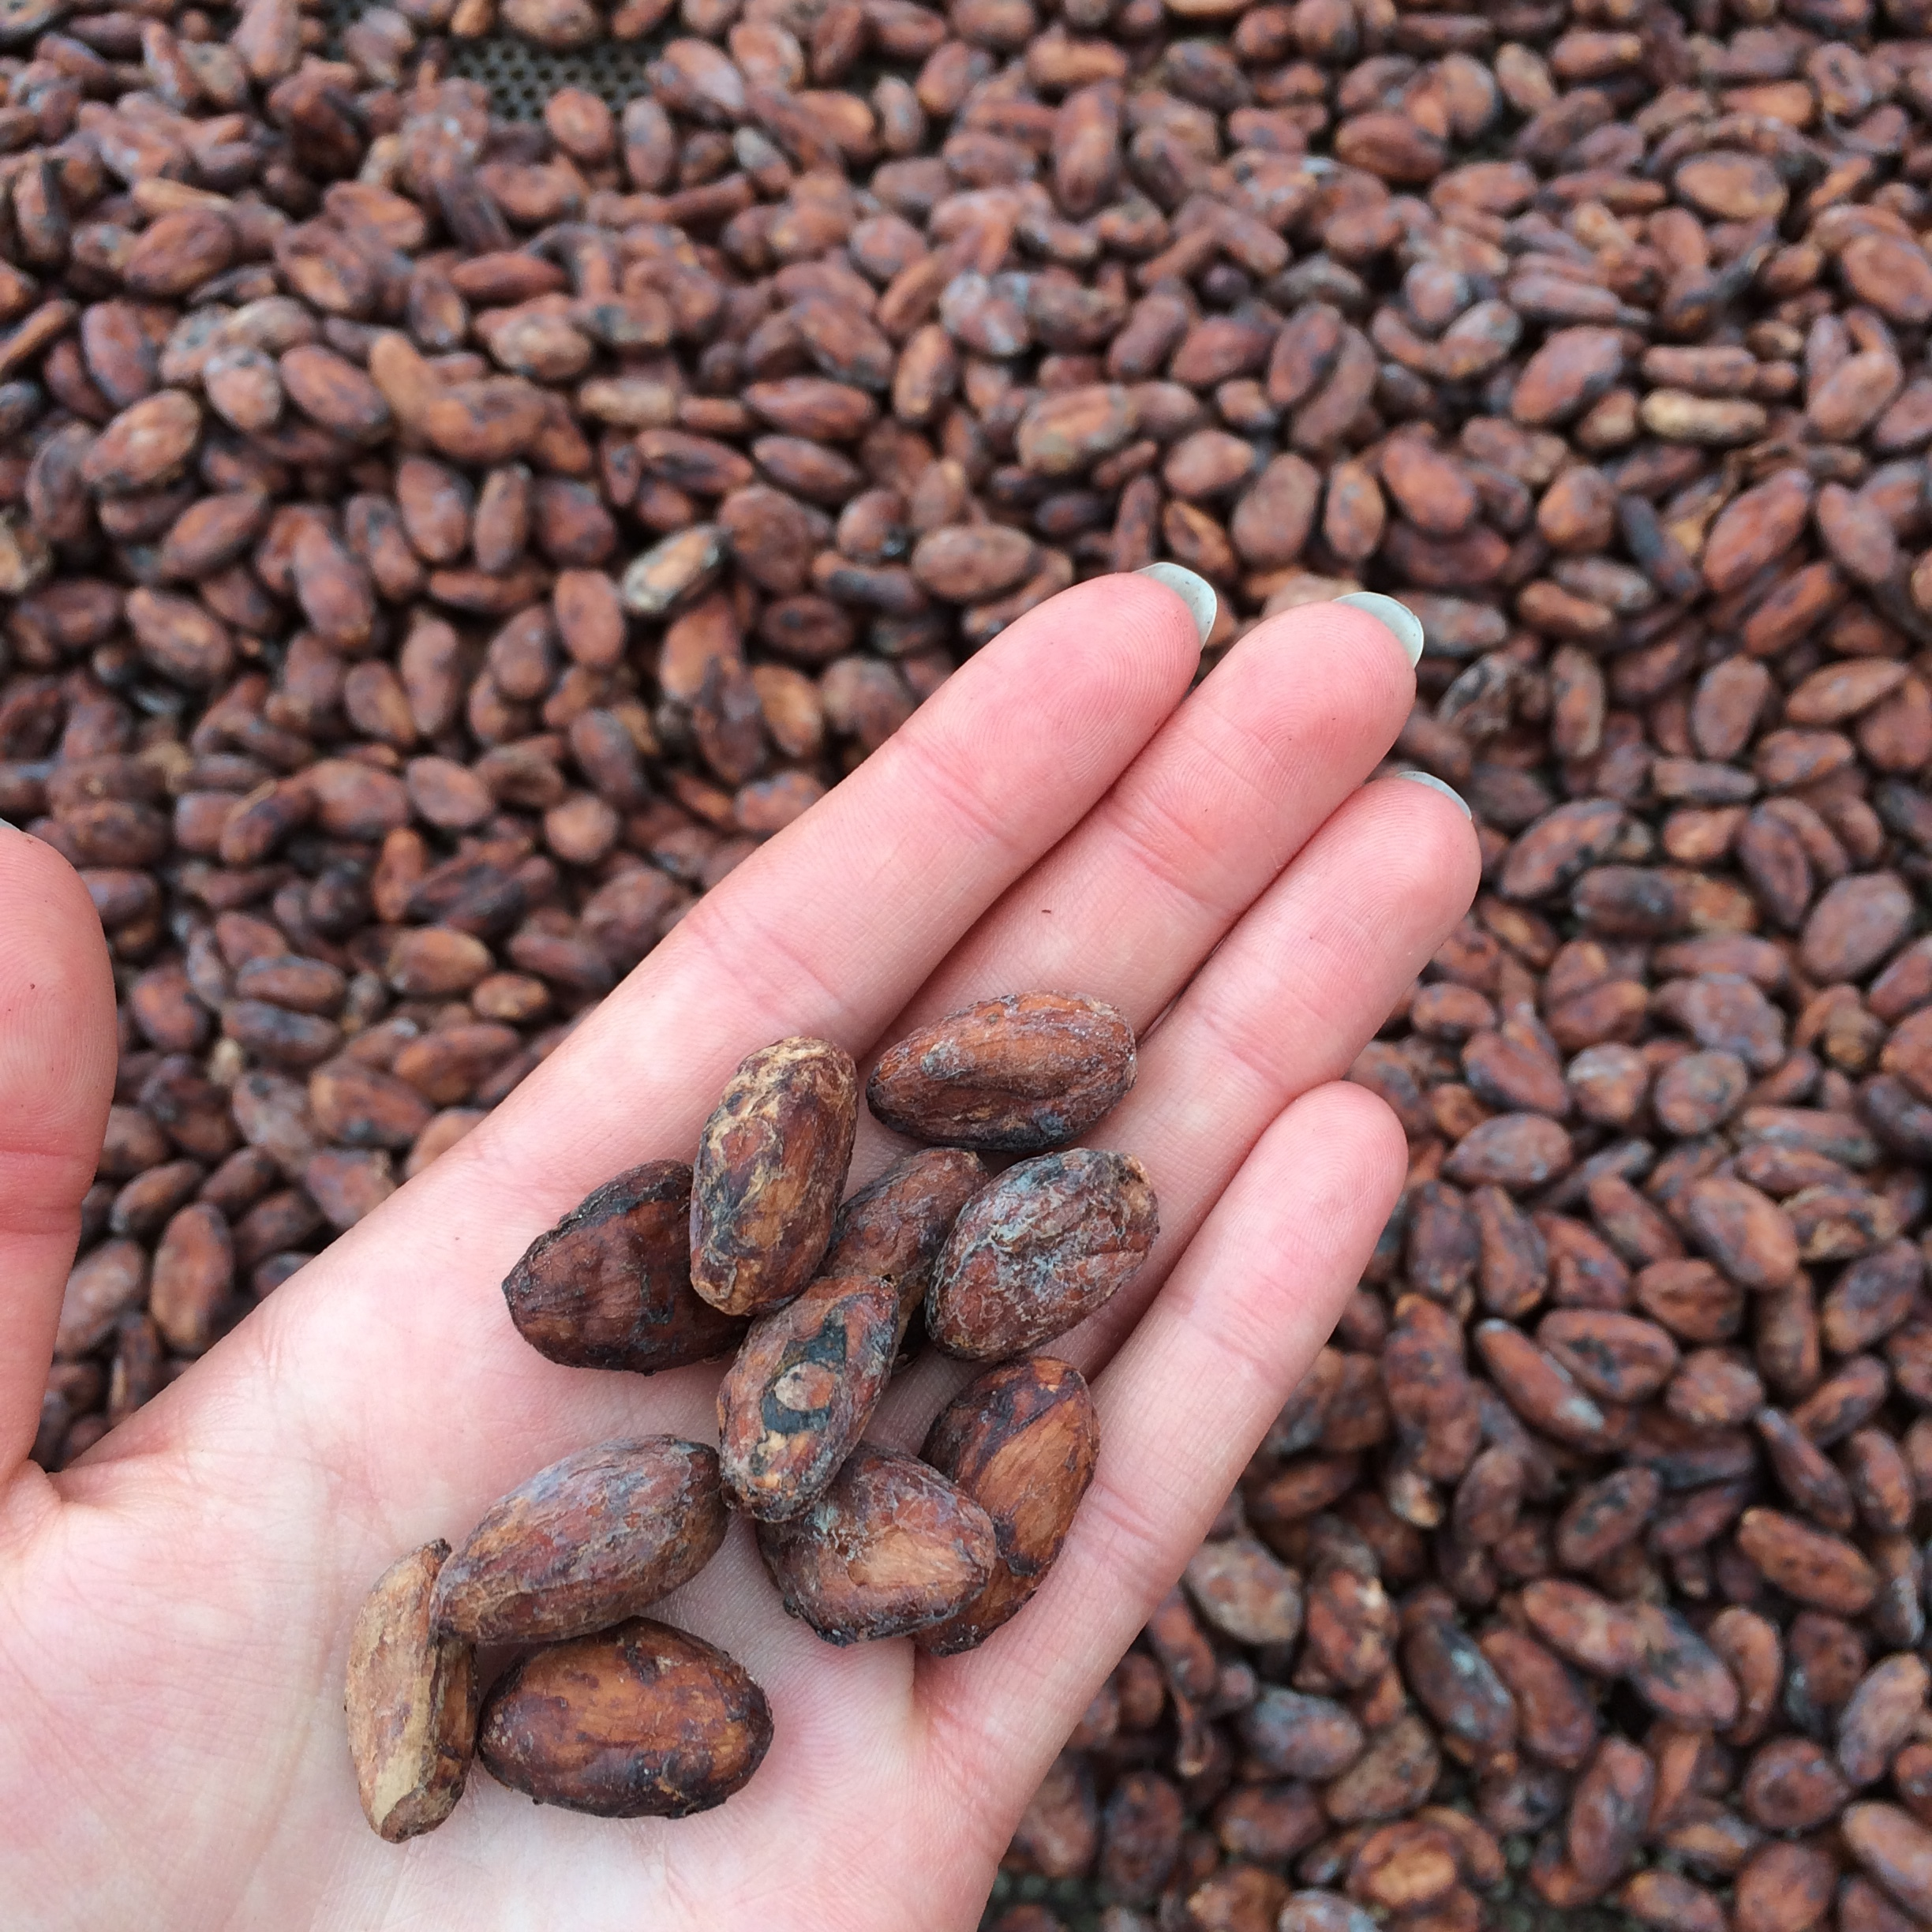 Dried cocoa beans.